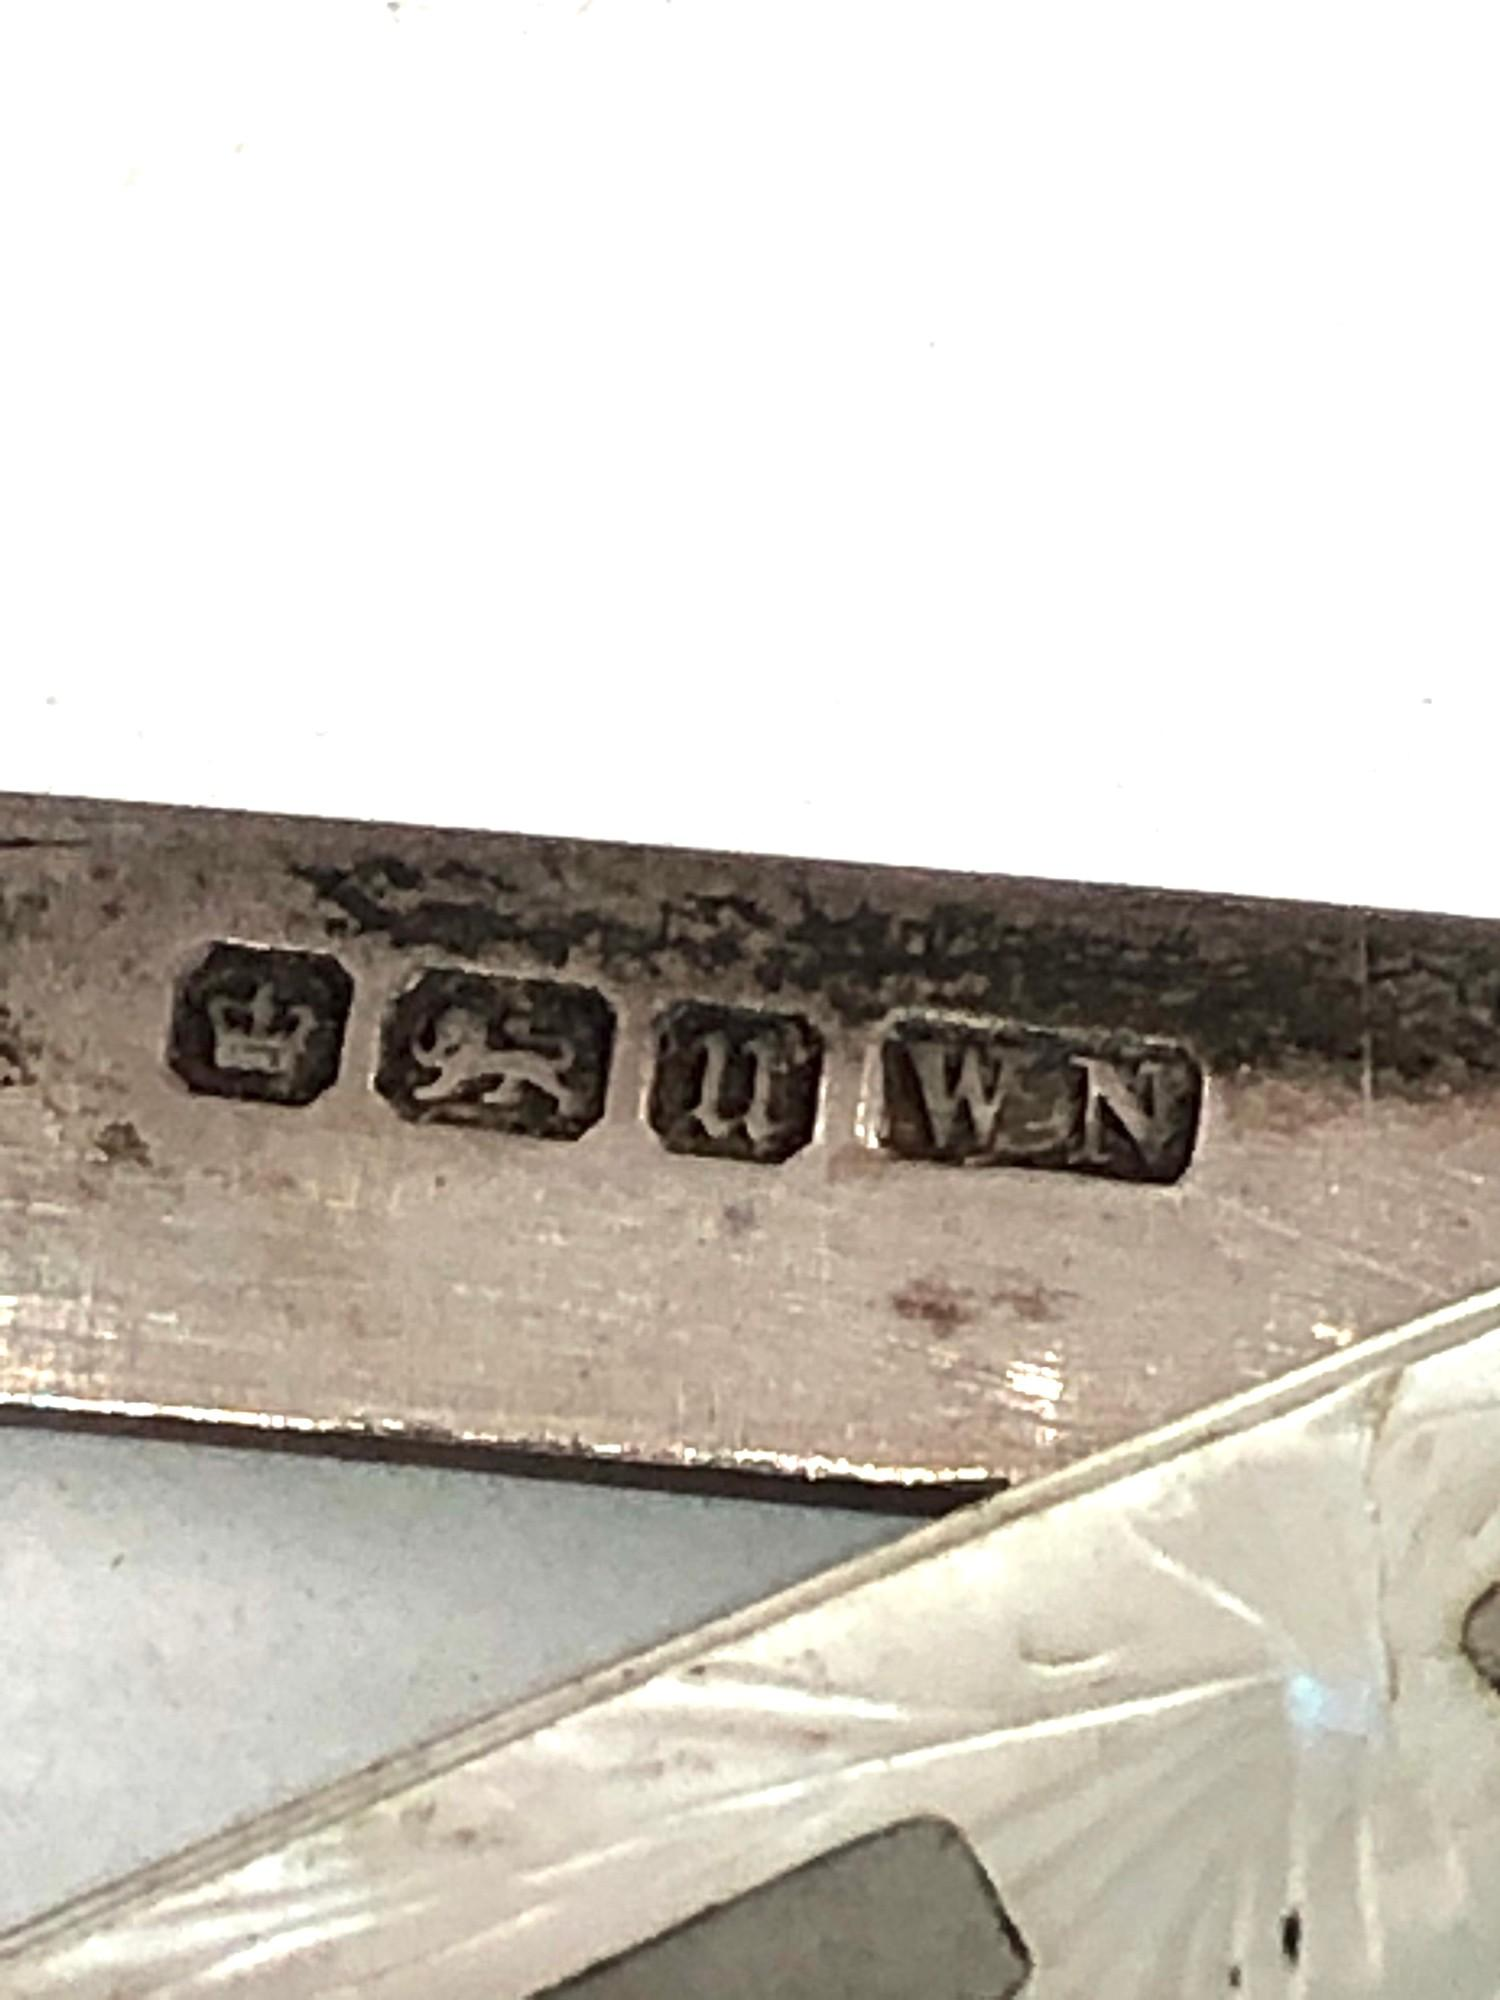 2 antique silver fruit knives - Image 4 of 4